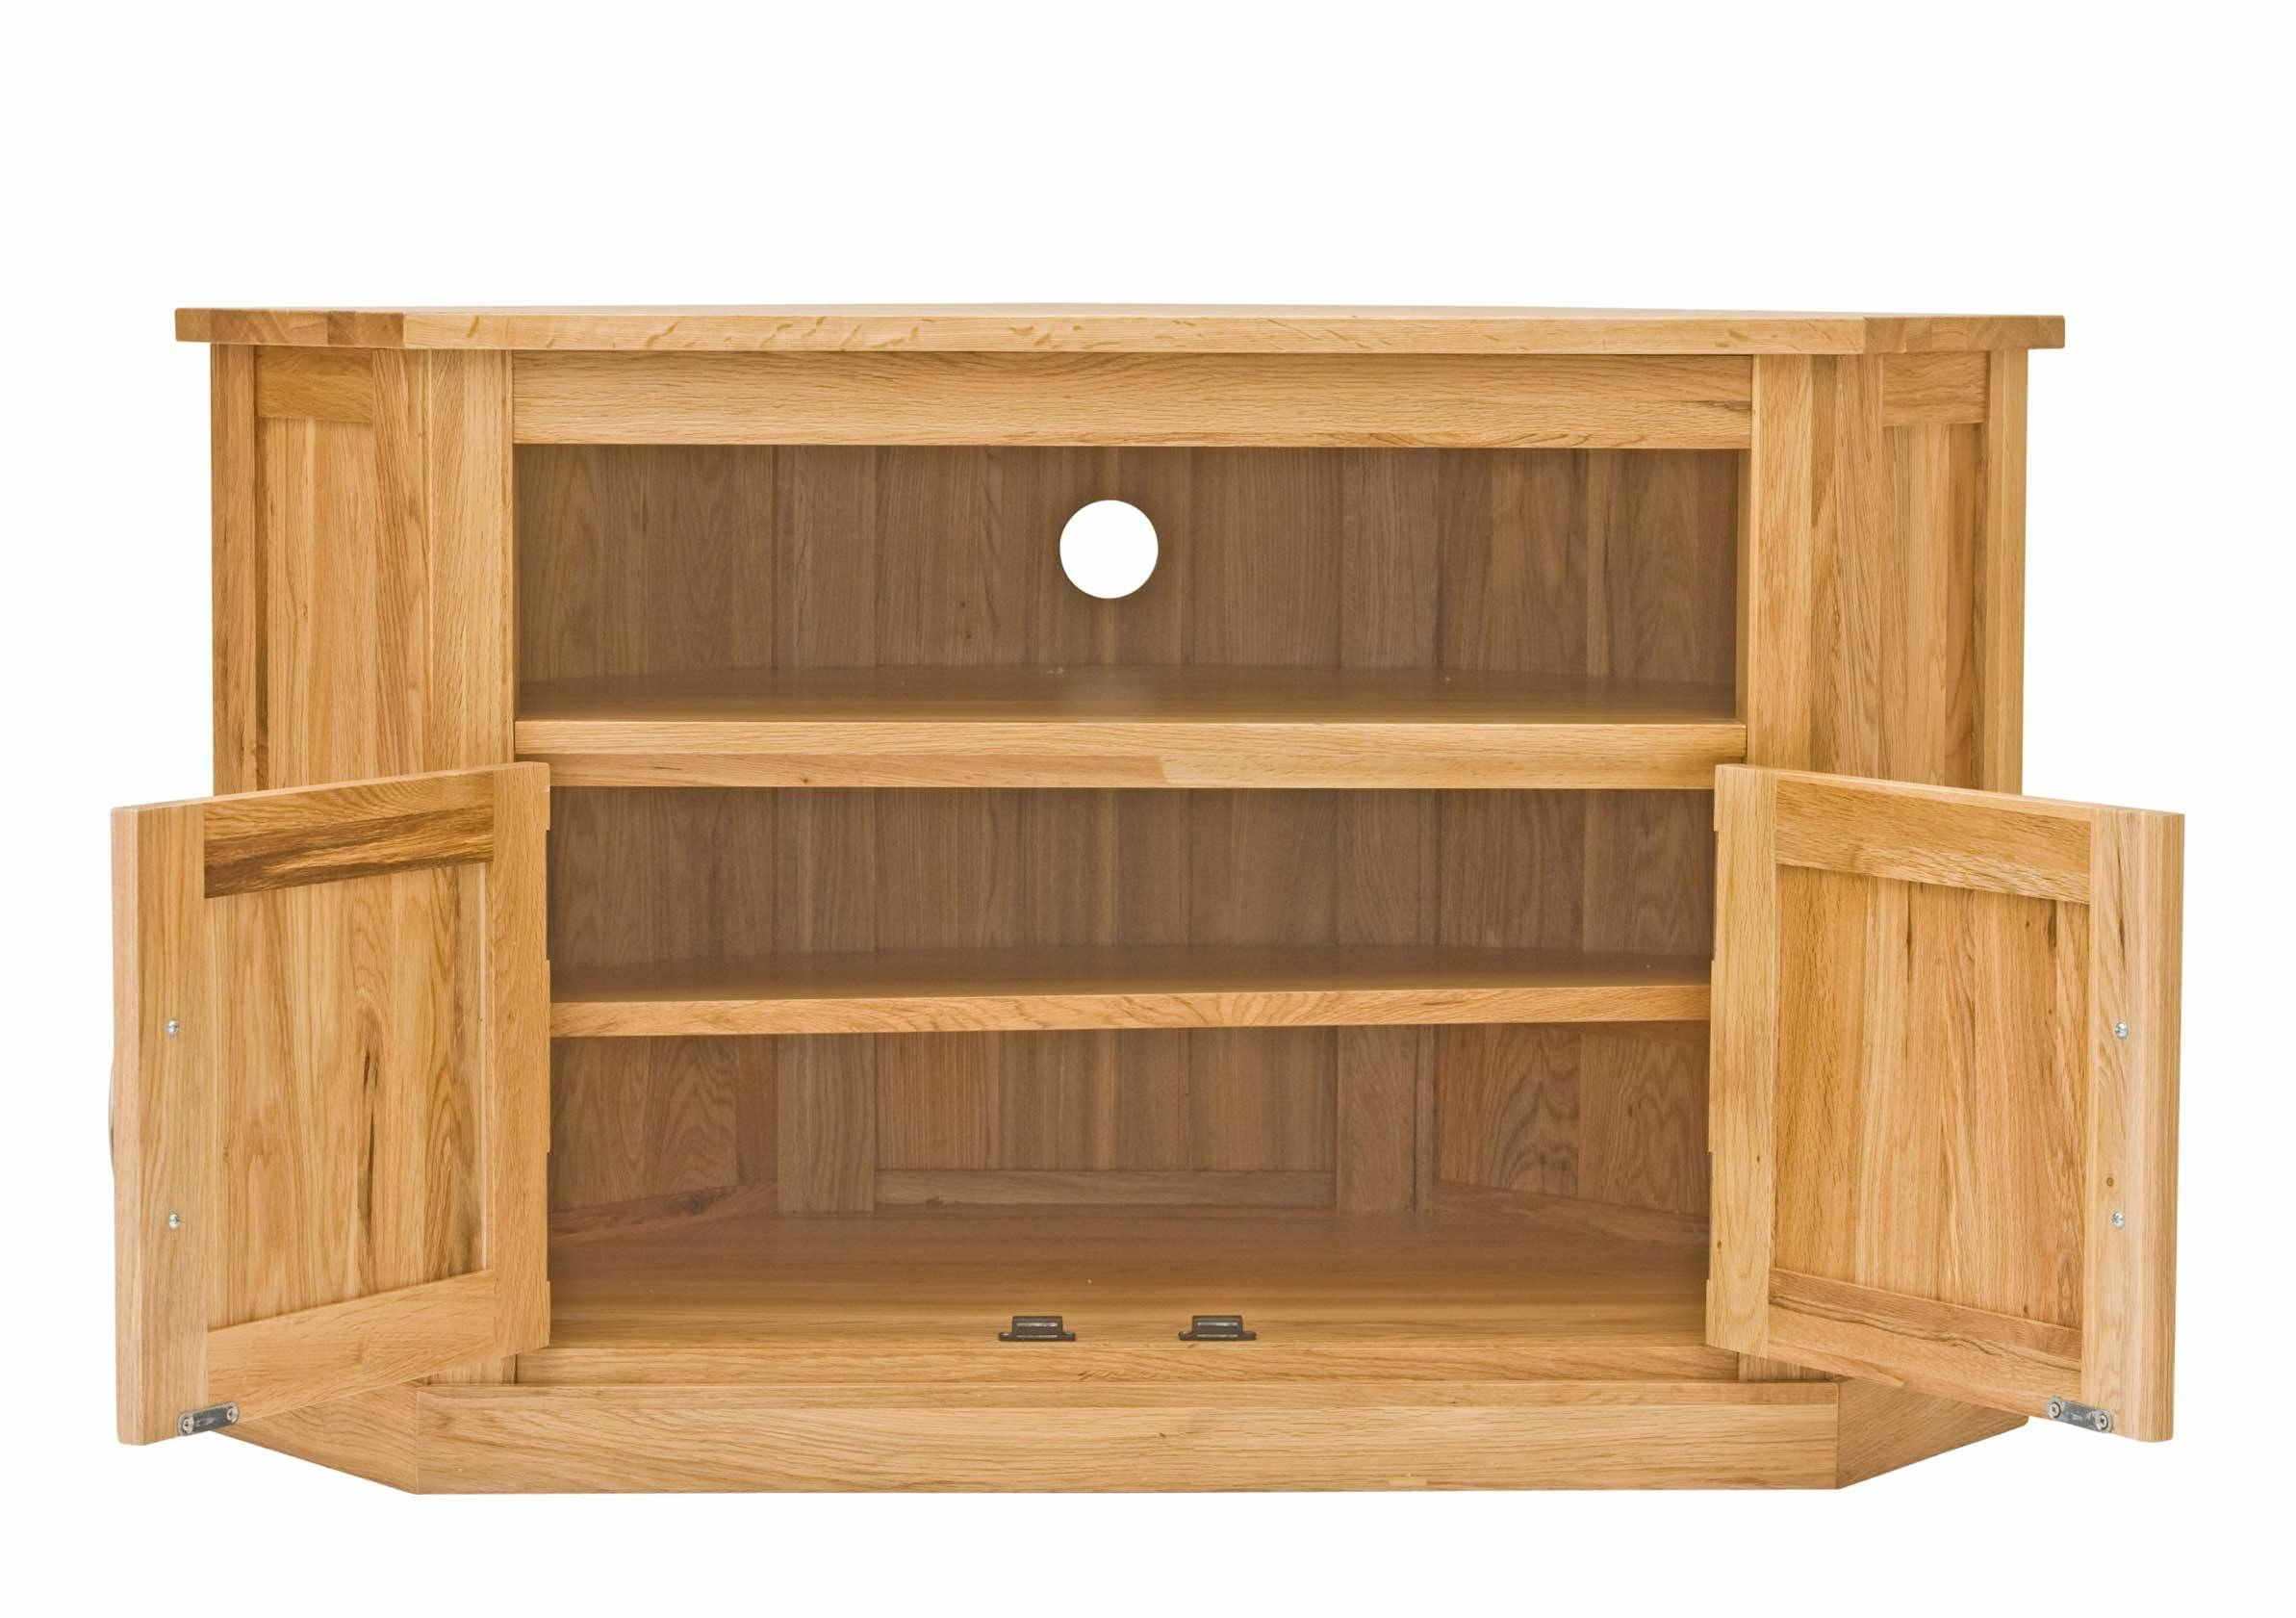 features built corner hutch version in and room oak a dining pin squared windows this